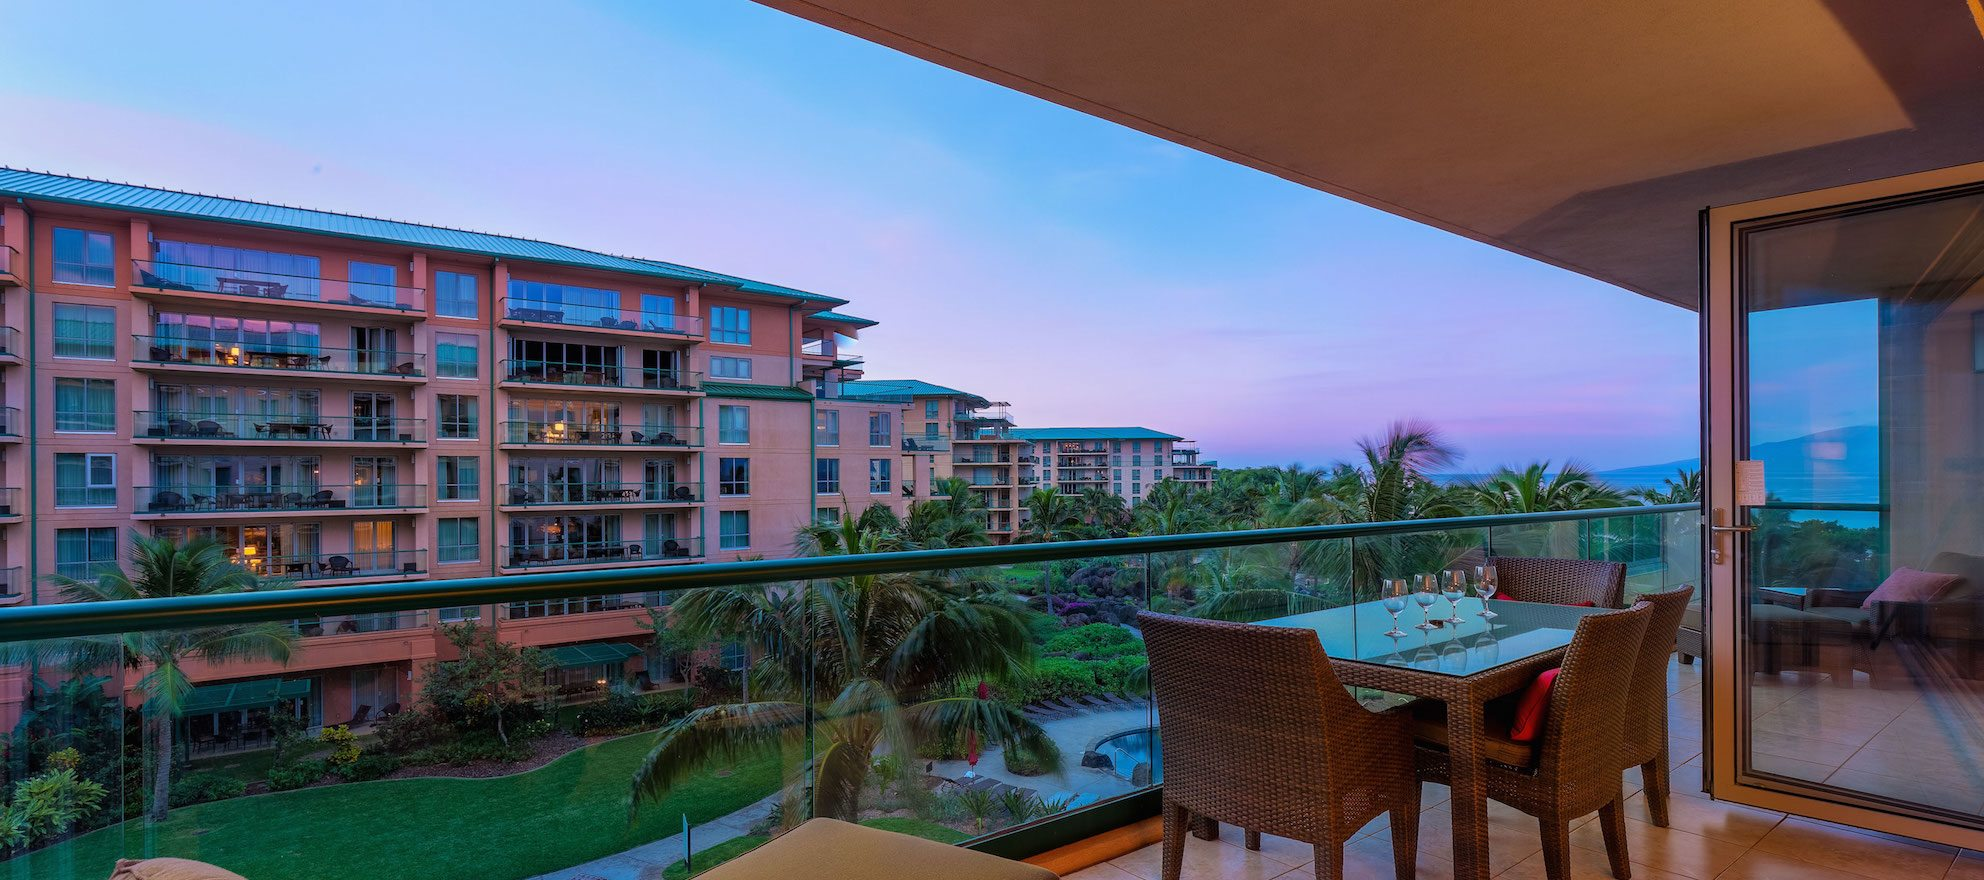 Luxury listing of the day: 3-bedroom condo at Maui resort